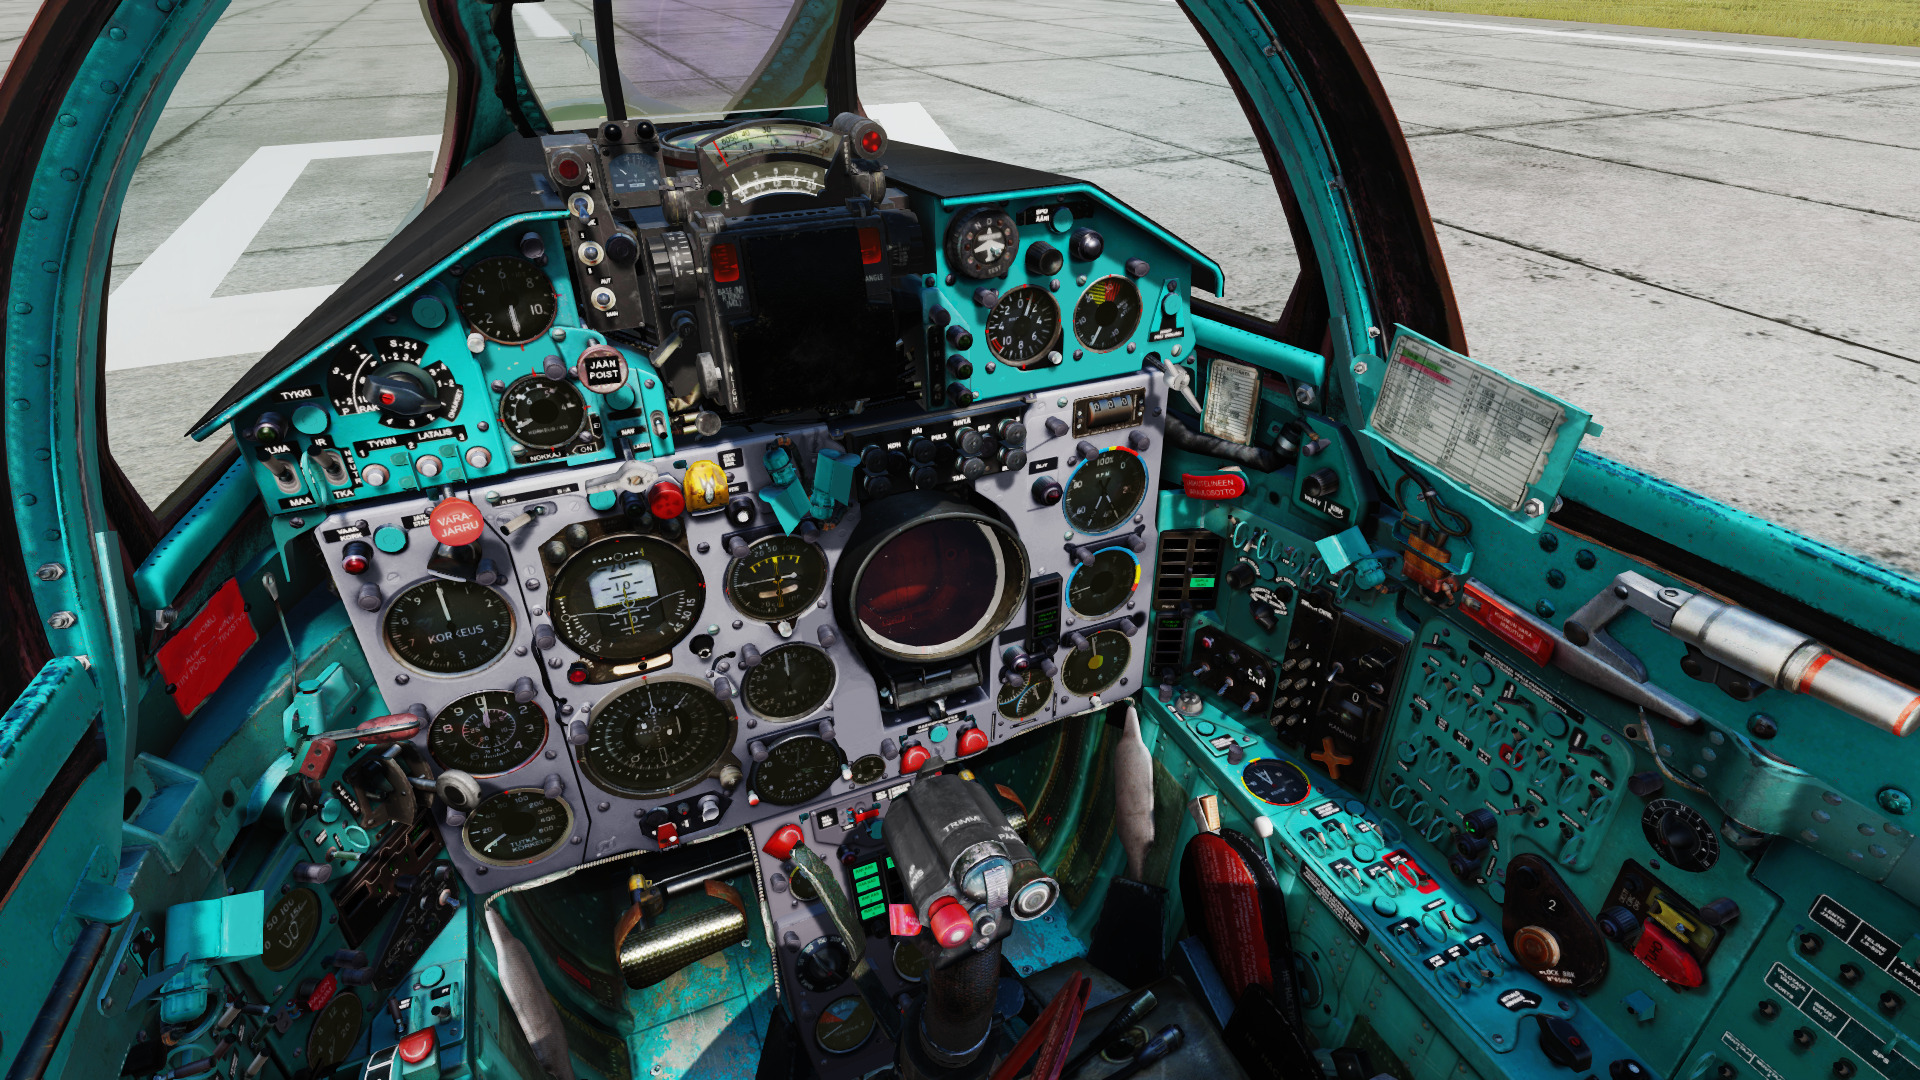 Finnish Air Force MiG-21 Cockpit (Fictional-kind-of)